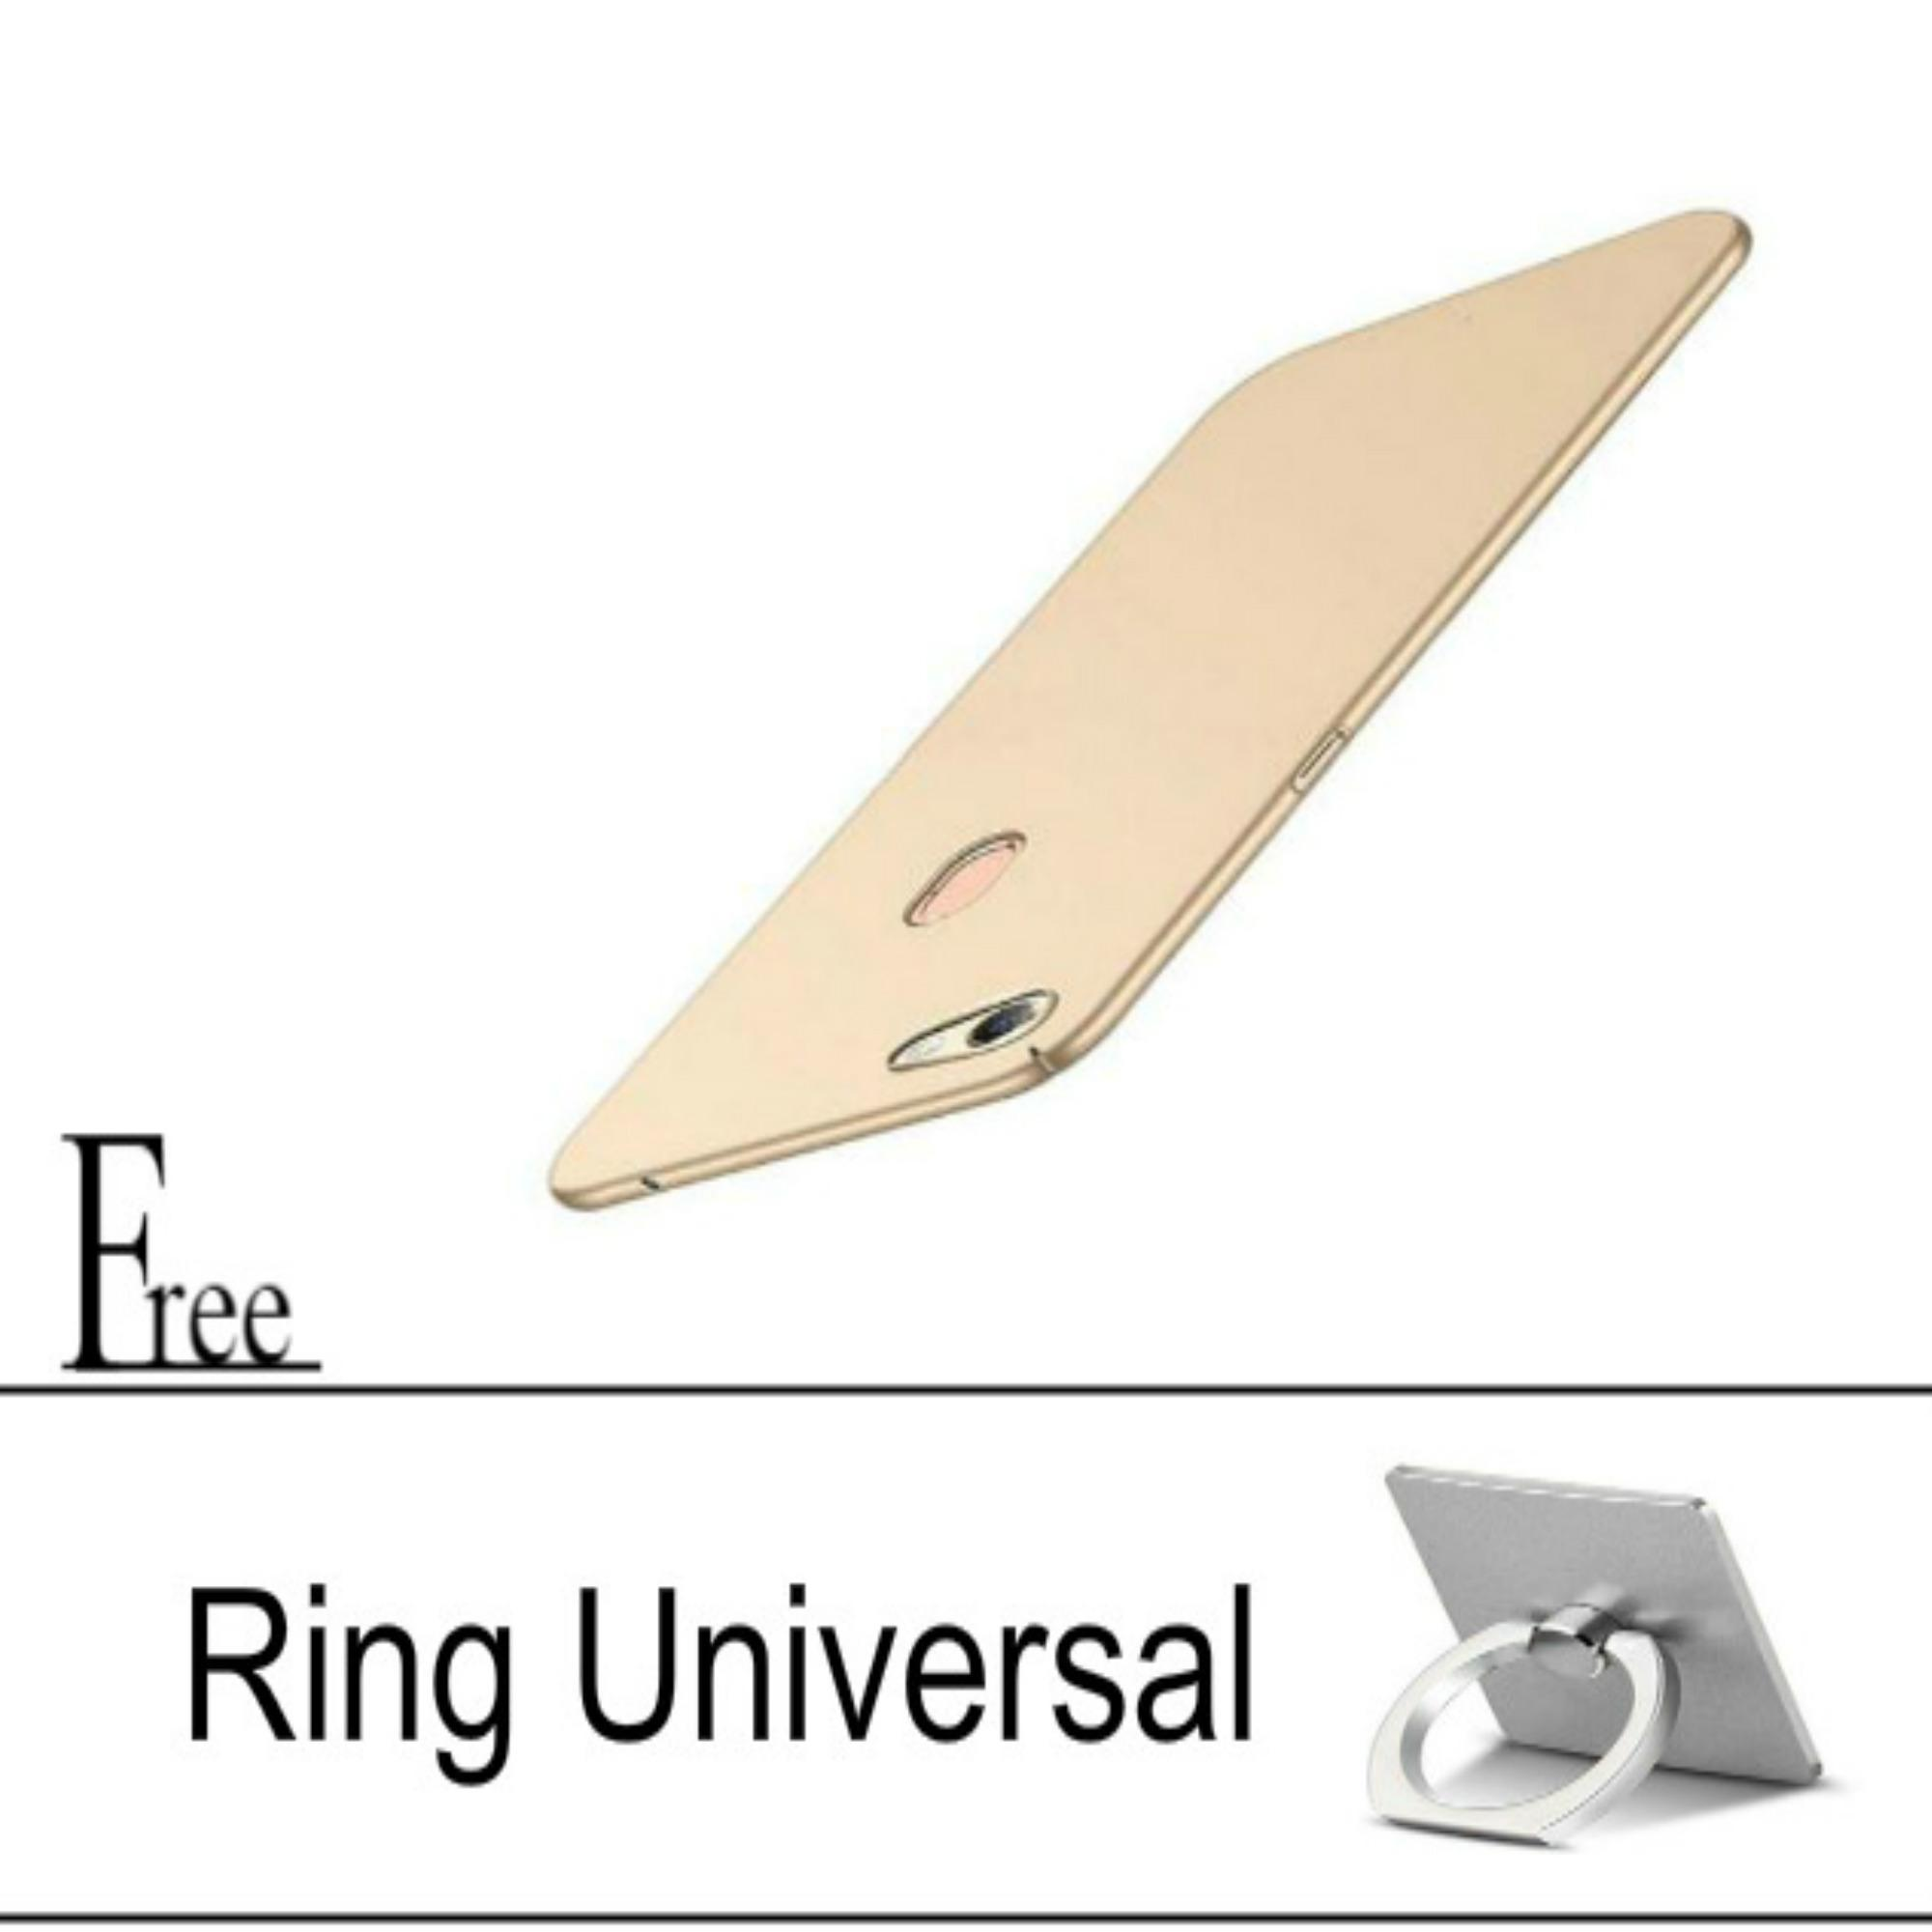 Hardcase Case For Oppo F7 Free Ring Universal